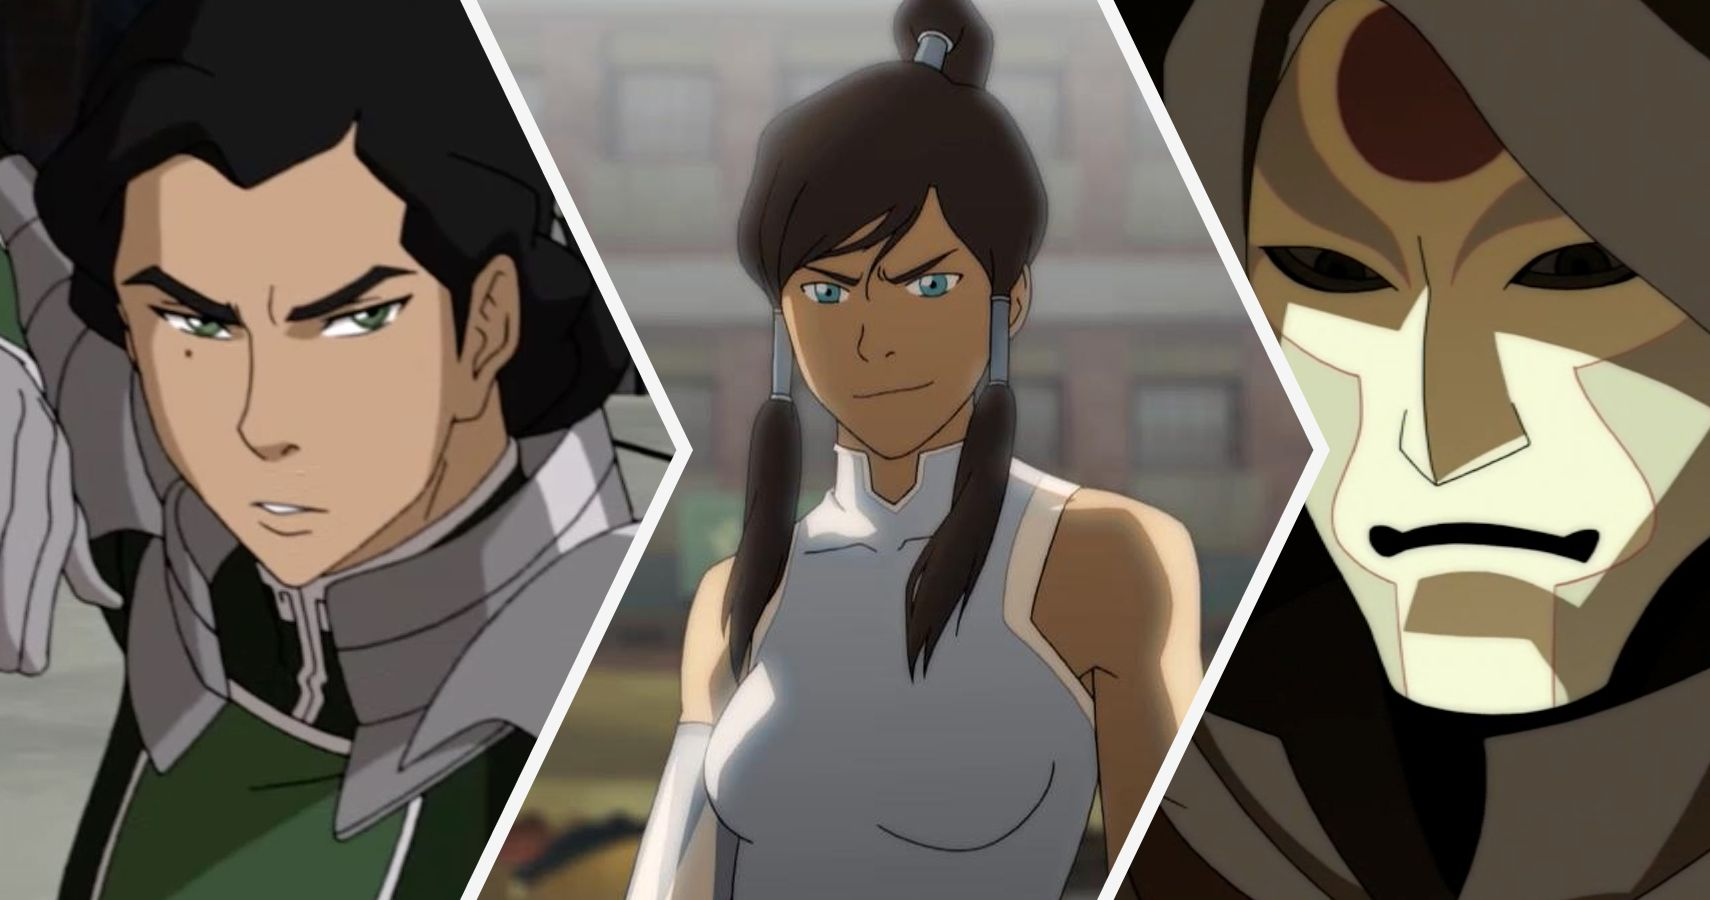 20 Legend Of Korra Characters Officially Ranked | ScreenRant